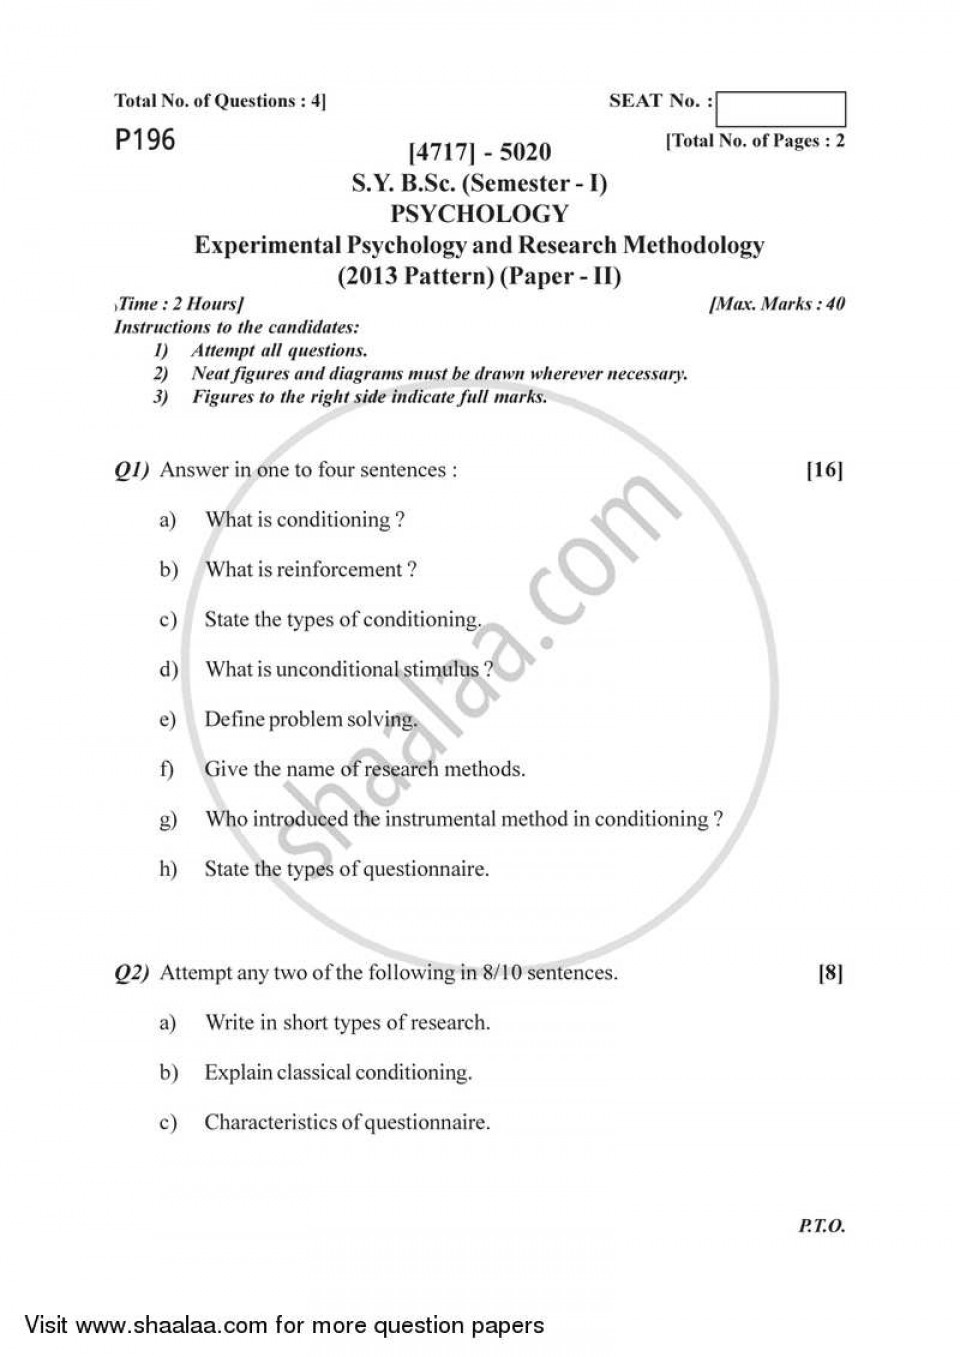 019 Research Paper On Psychology University Of Pune Bachelor Bsc Experimental Methodology Semester Sybsc Pattern 2e41c64dd7a97493da58d01b3ff66032b Wonderful Free Forensic Example Developmental Sample 960